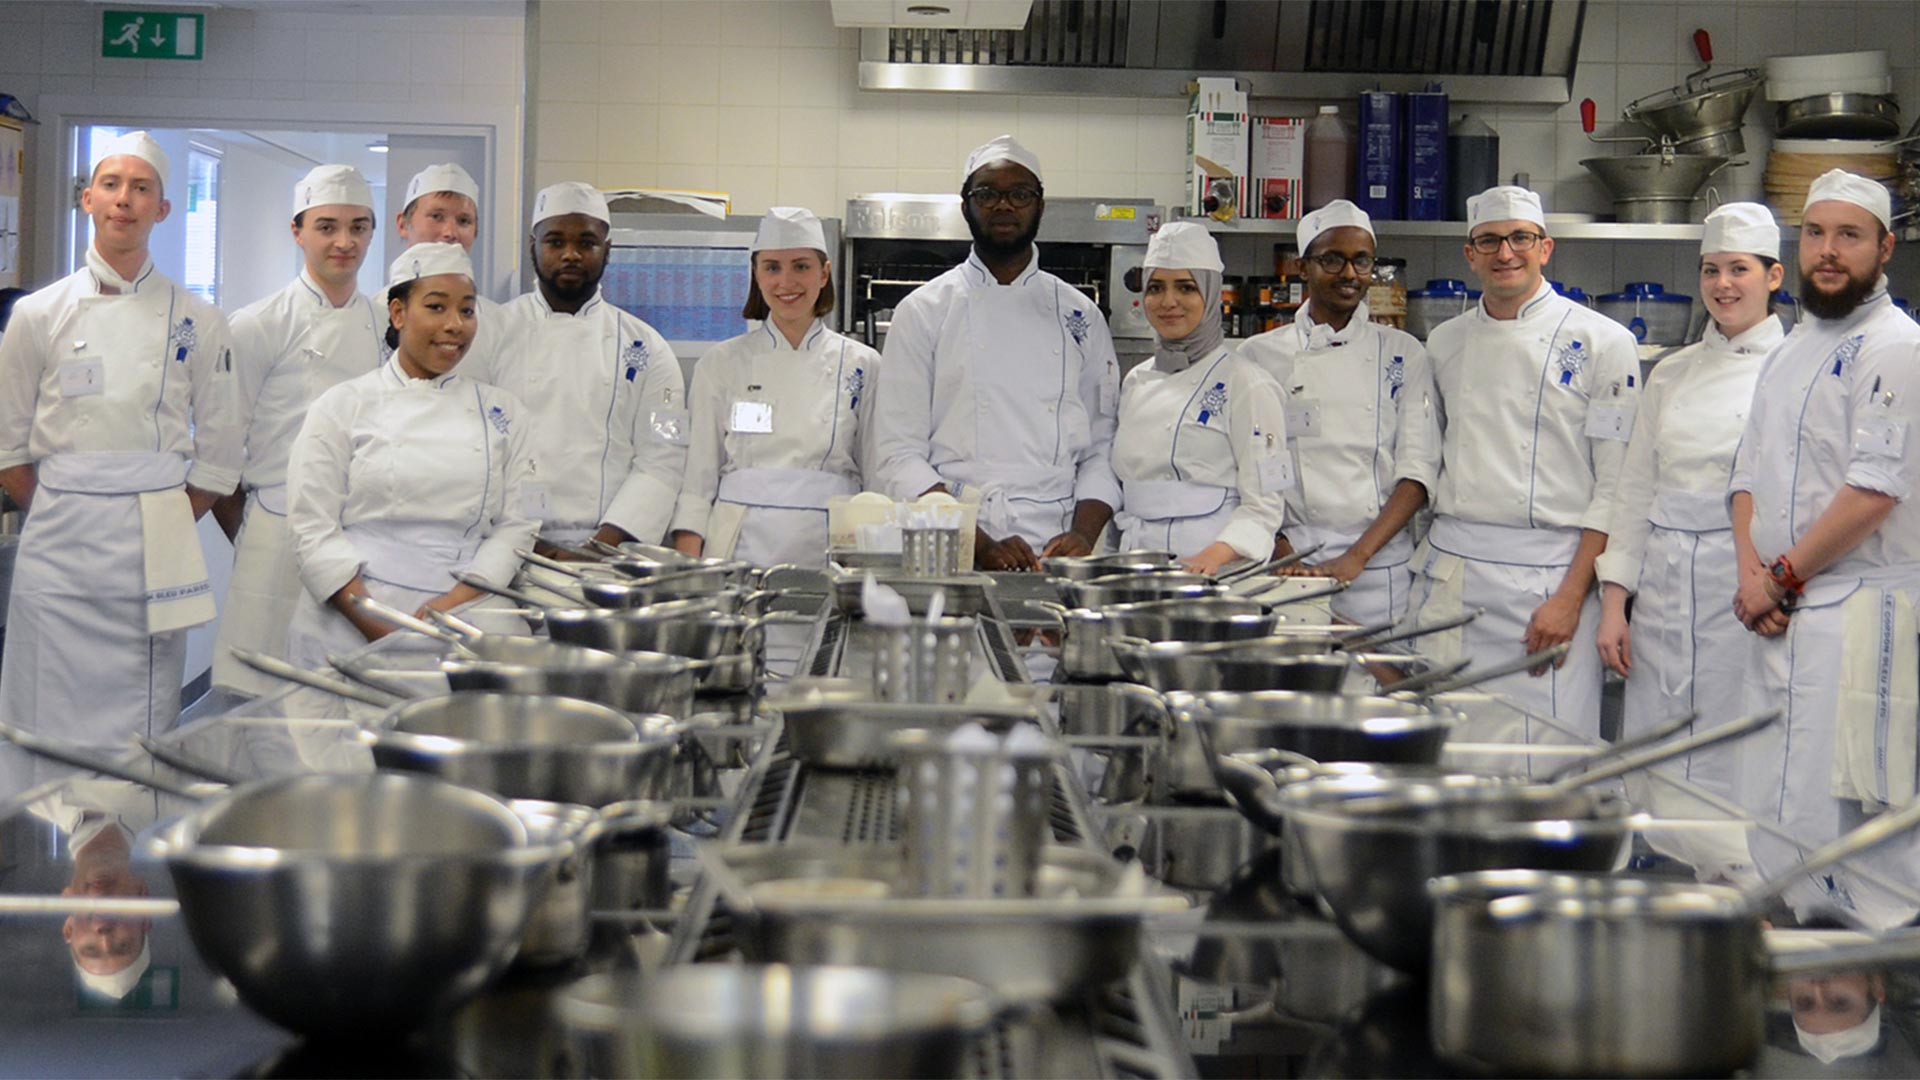 The finalists for Le Cordon Bleu's UK Scholarship Award 2017